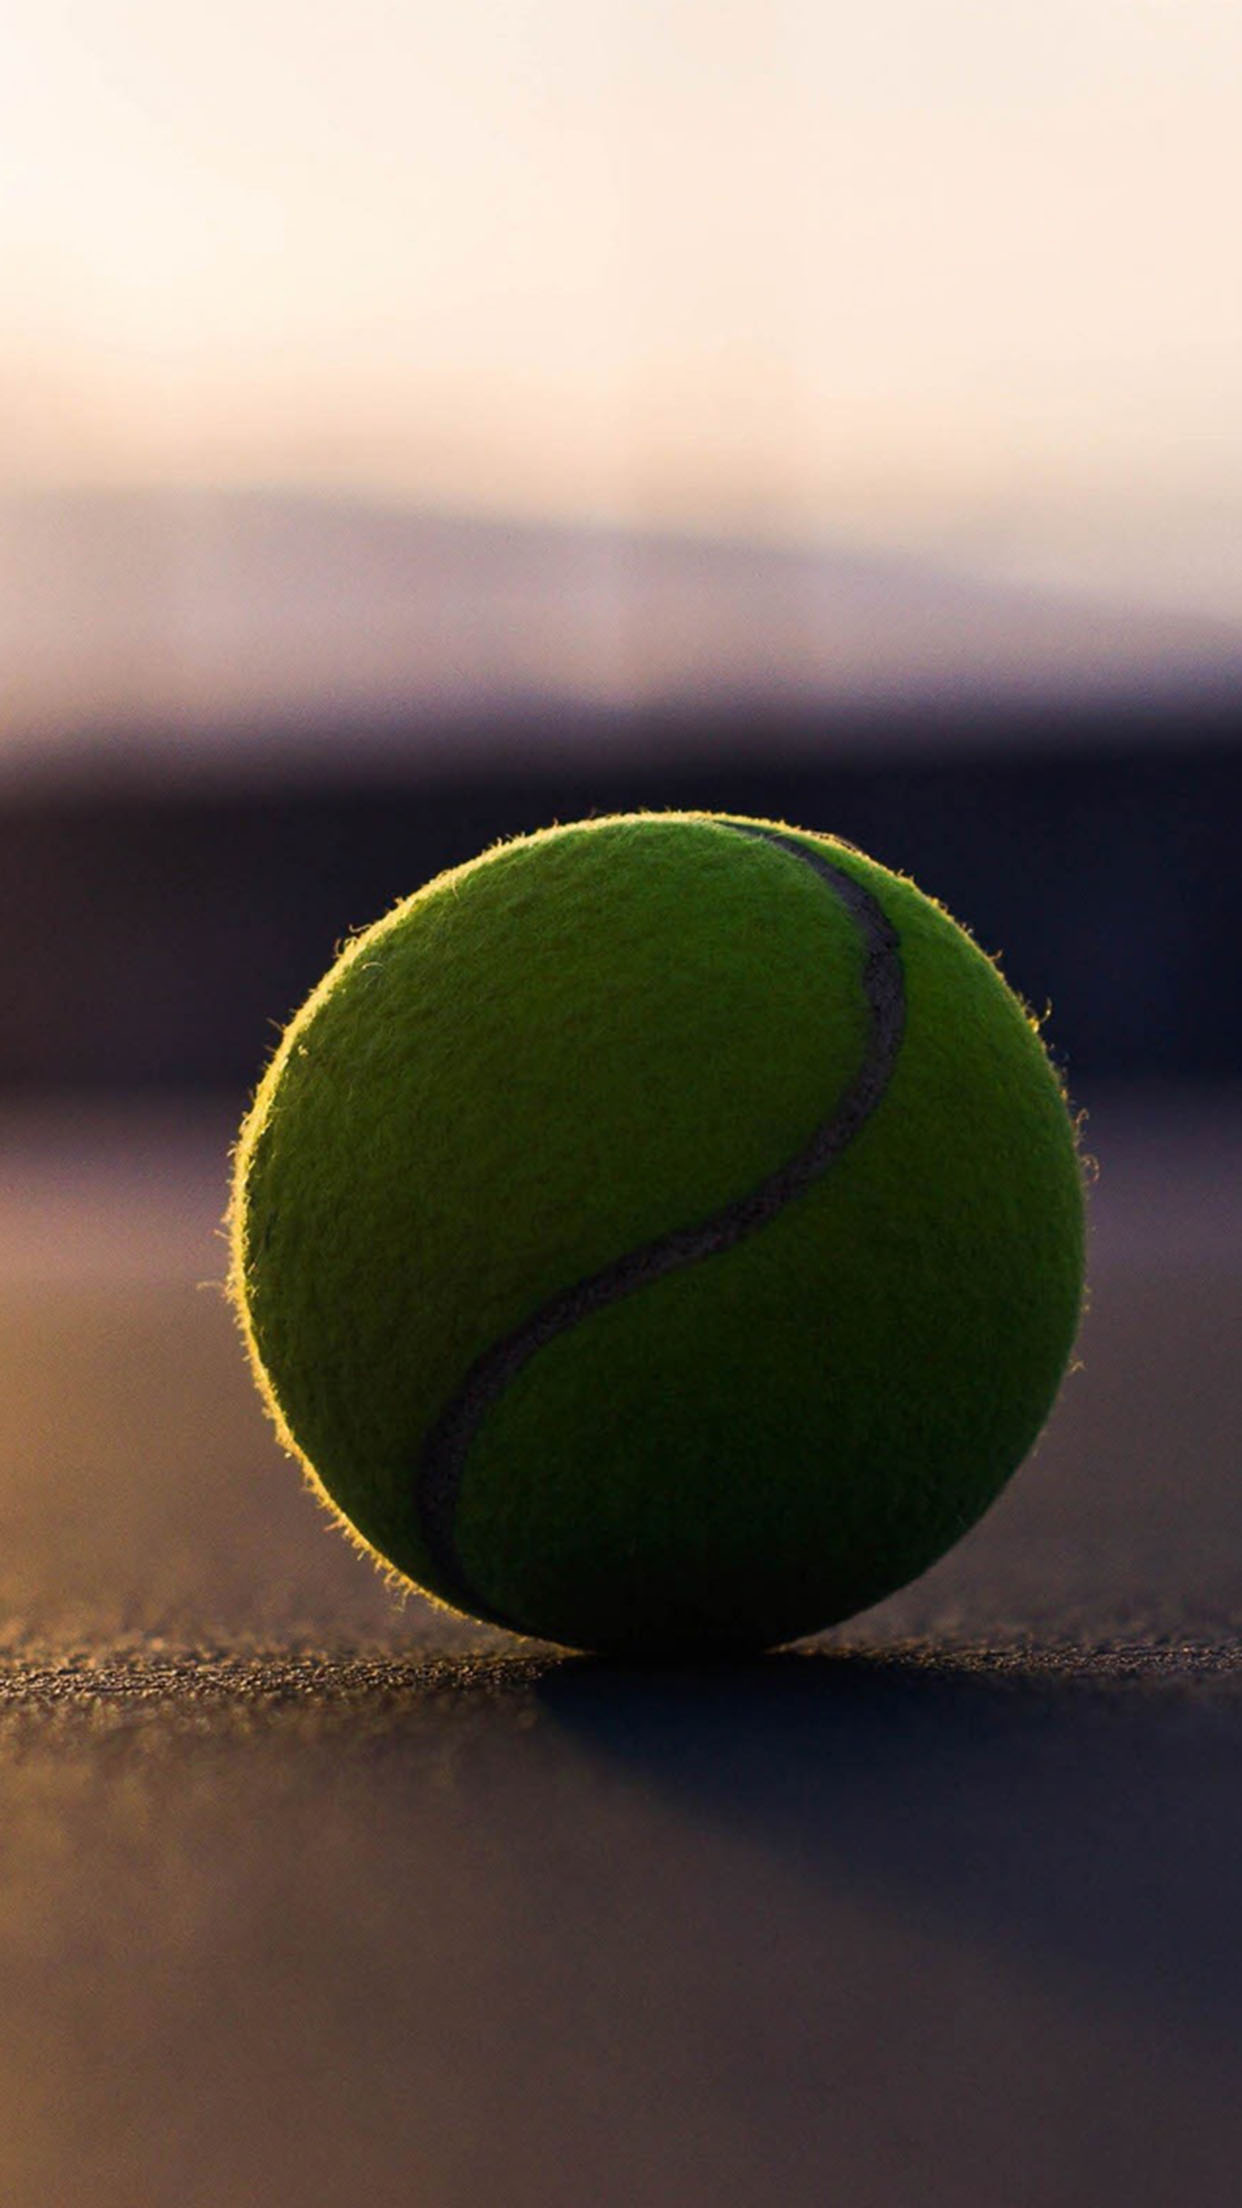 Tennis Tennis ball 3Wallpapers iPhone Parallax Tennis ball